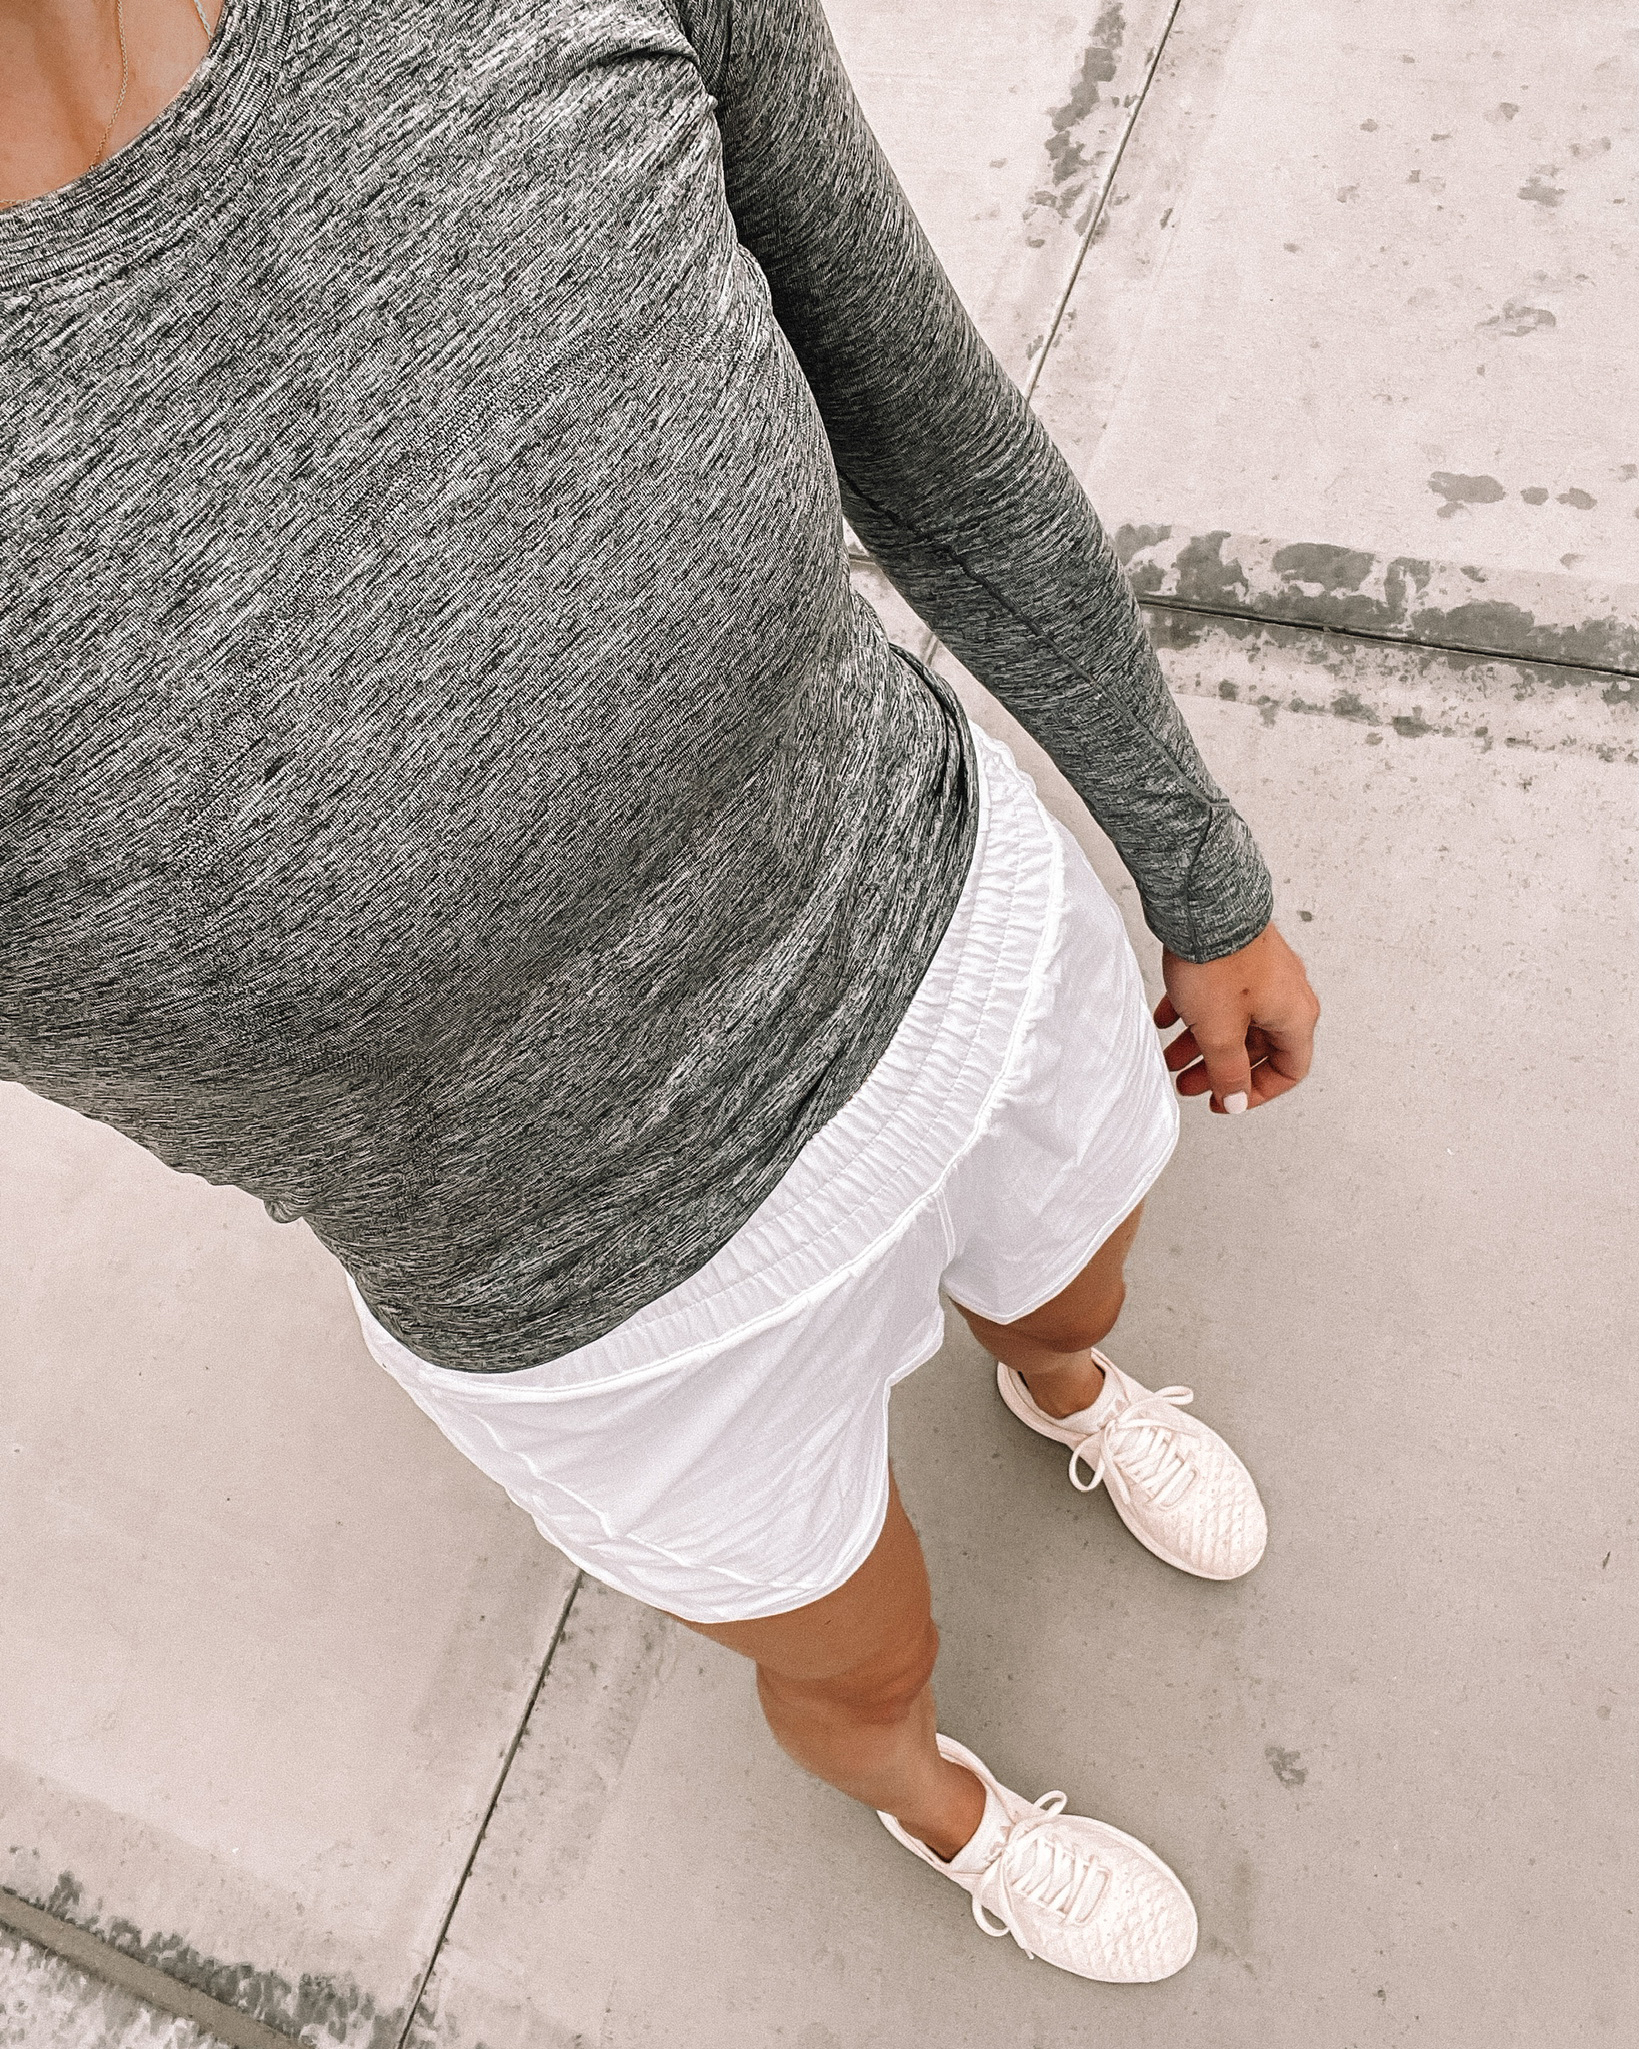 Fashion Jackson Wearing lululemon Swiftly Long Sleeve Top Grey lululelmon White Running Shorts APL Sneakers workout outfits for women